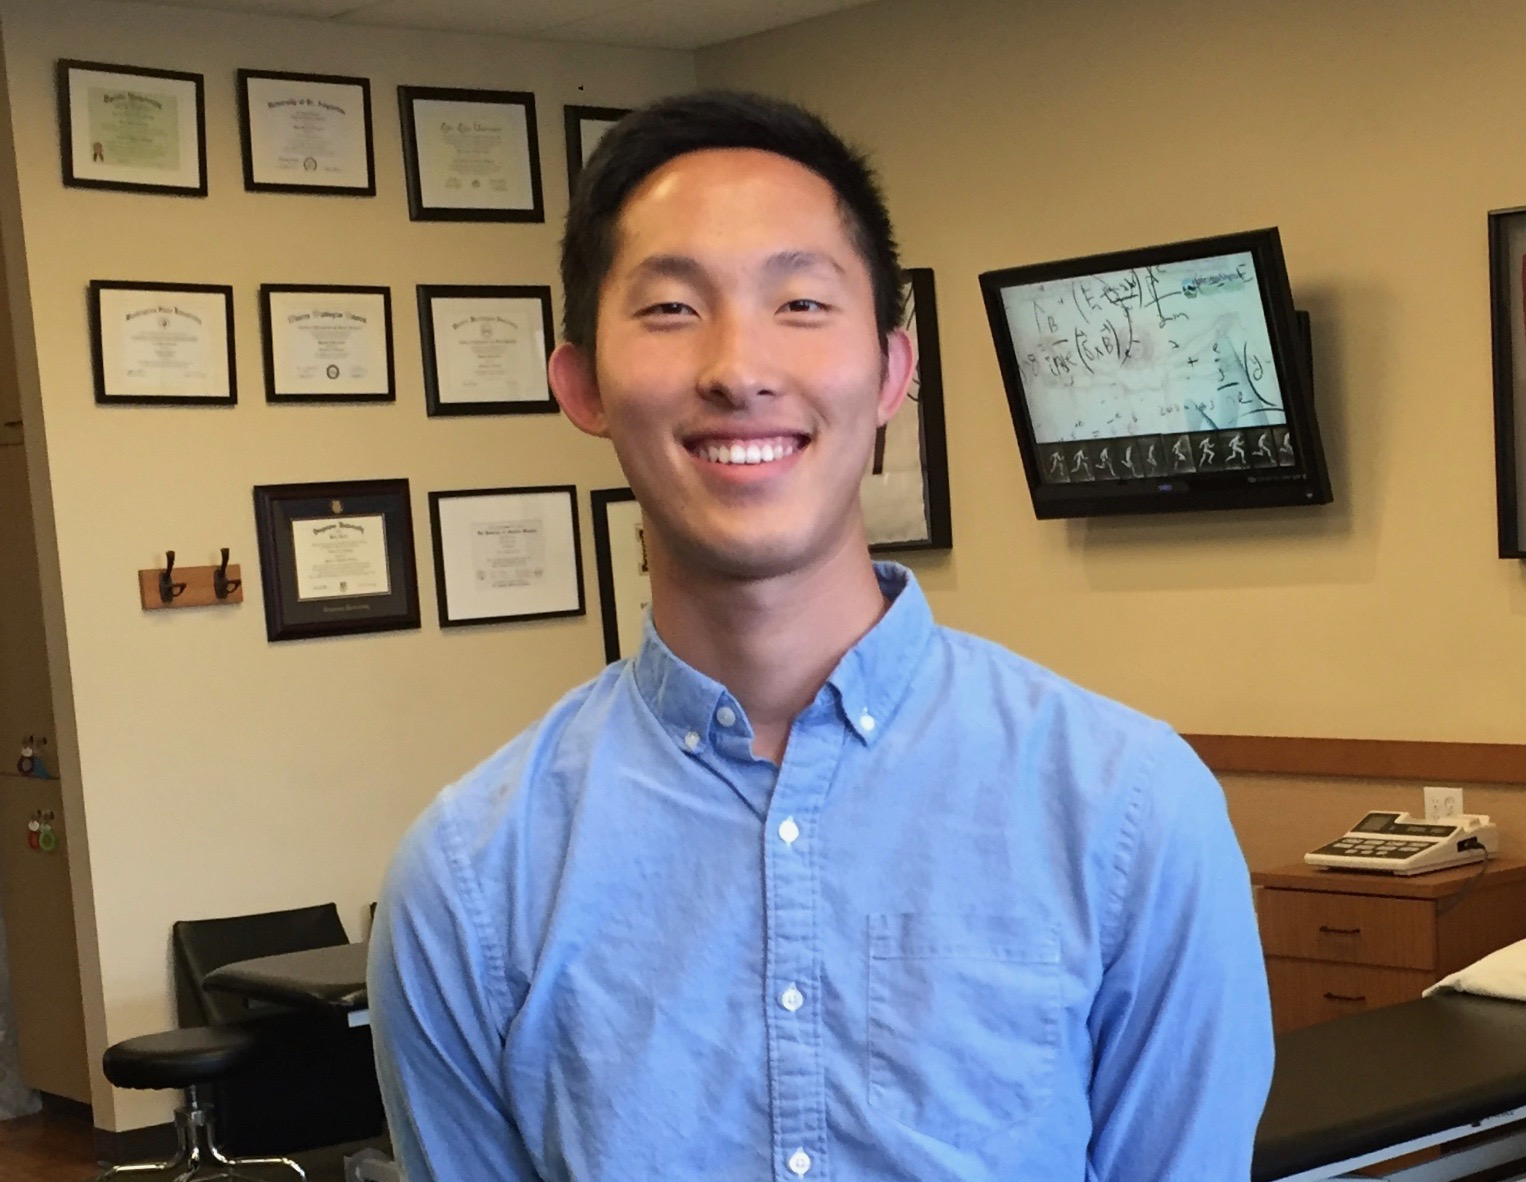 Shin ParkPTA student - Shin will be graduating from Lake Washington Institute PTA school in the Spring 2019